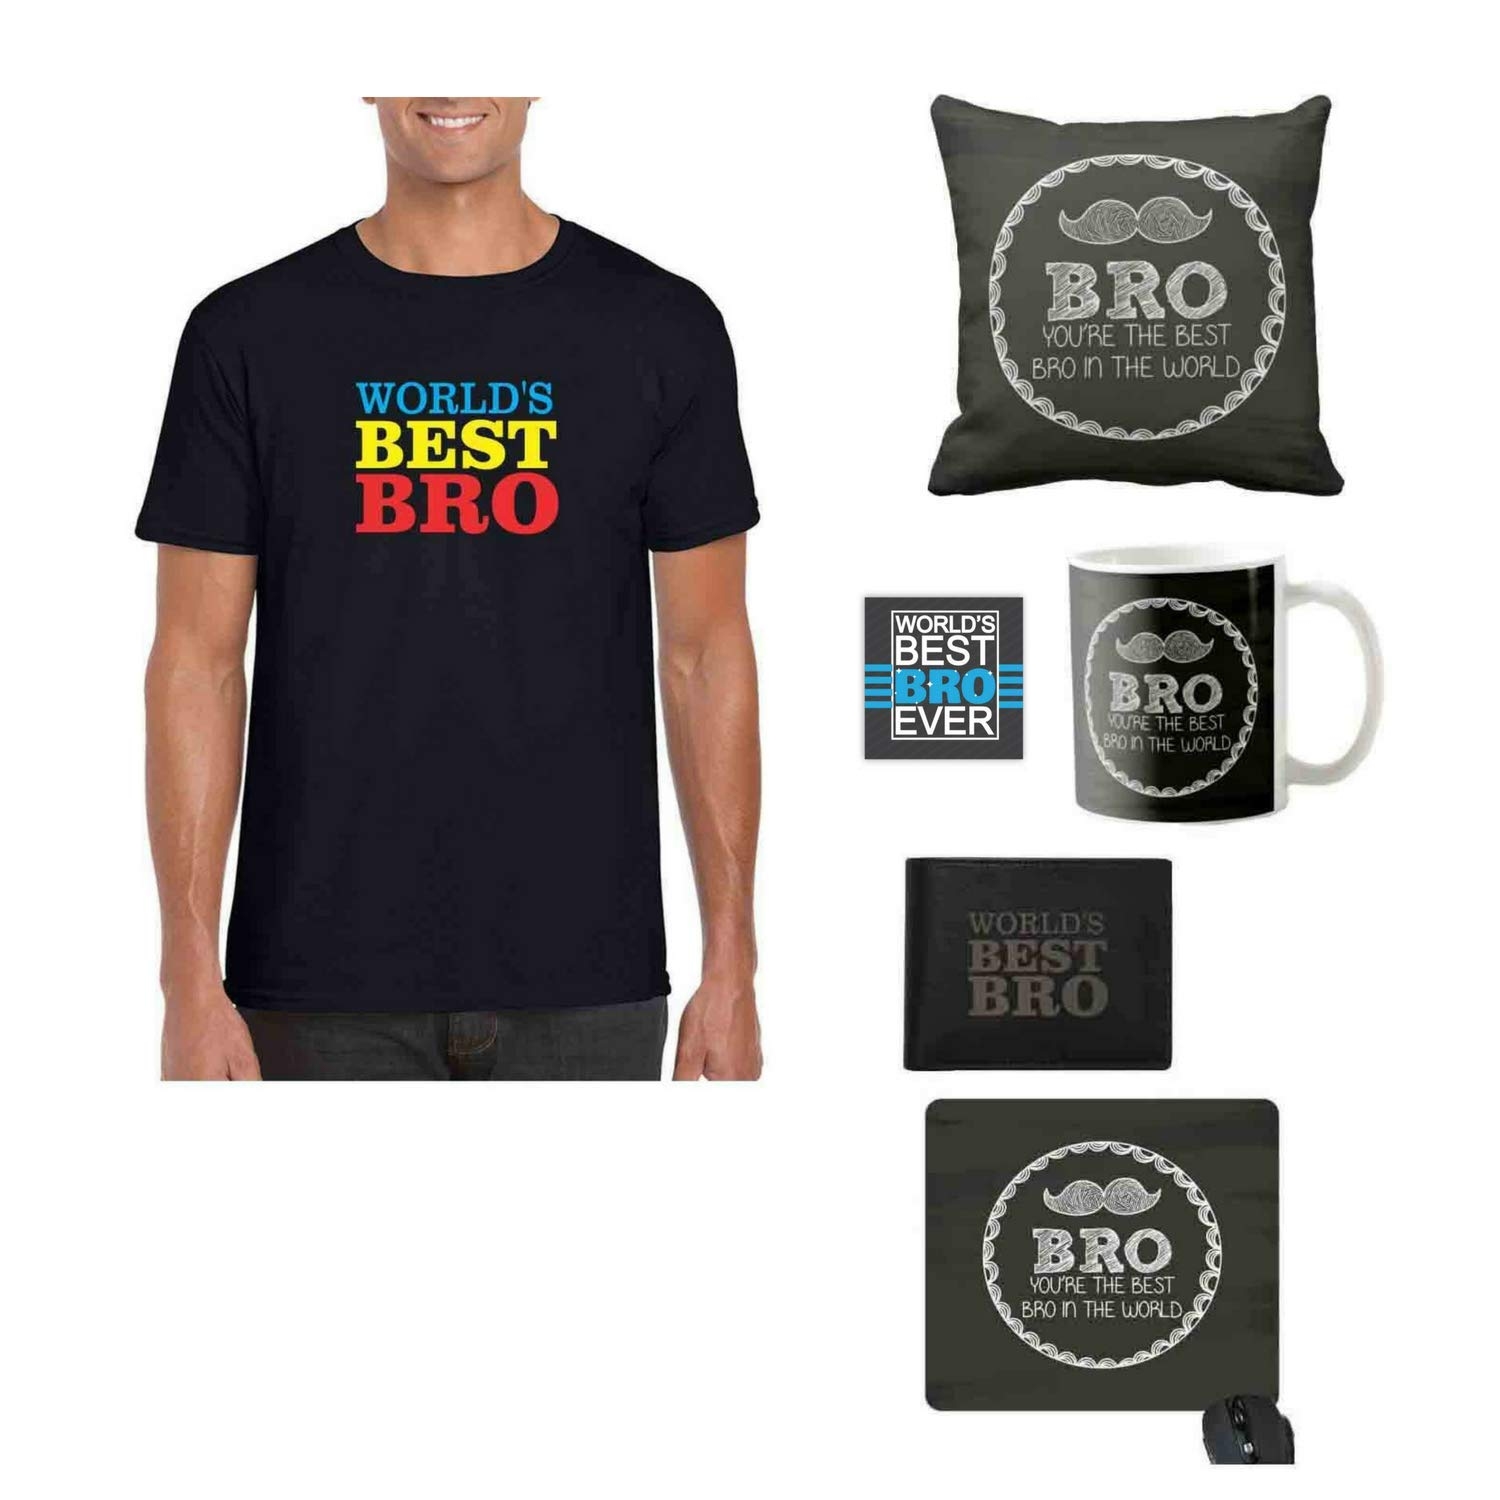 YaYa cafe Bhaidooj Gifts for Brother, Worlds Best Brother T-Shirt, Mug, Coaster, Mouse Pad, Cushion Cover, Black President Mens Leather Wallet, Set of 6